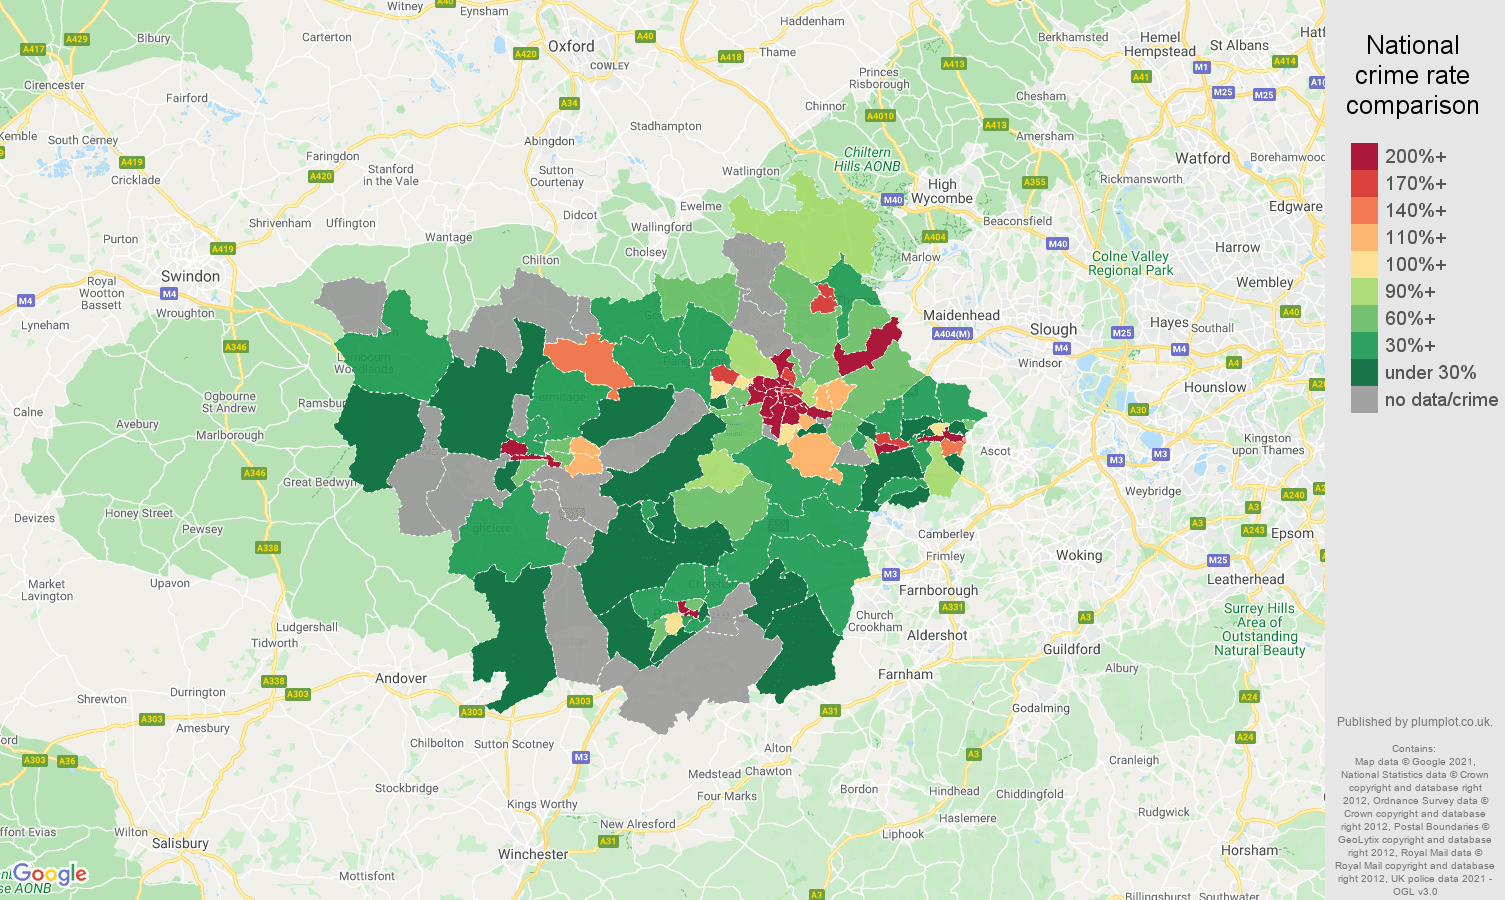 Reading bicycle theft crime rate comparison map